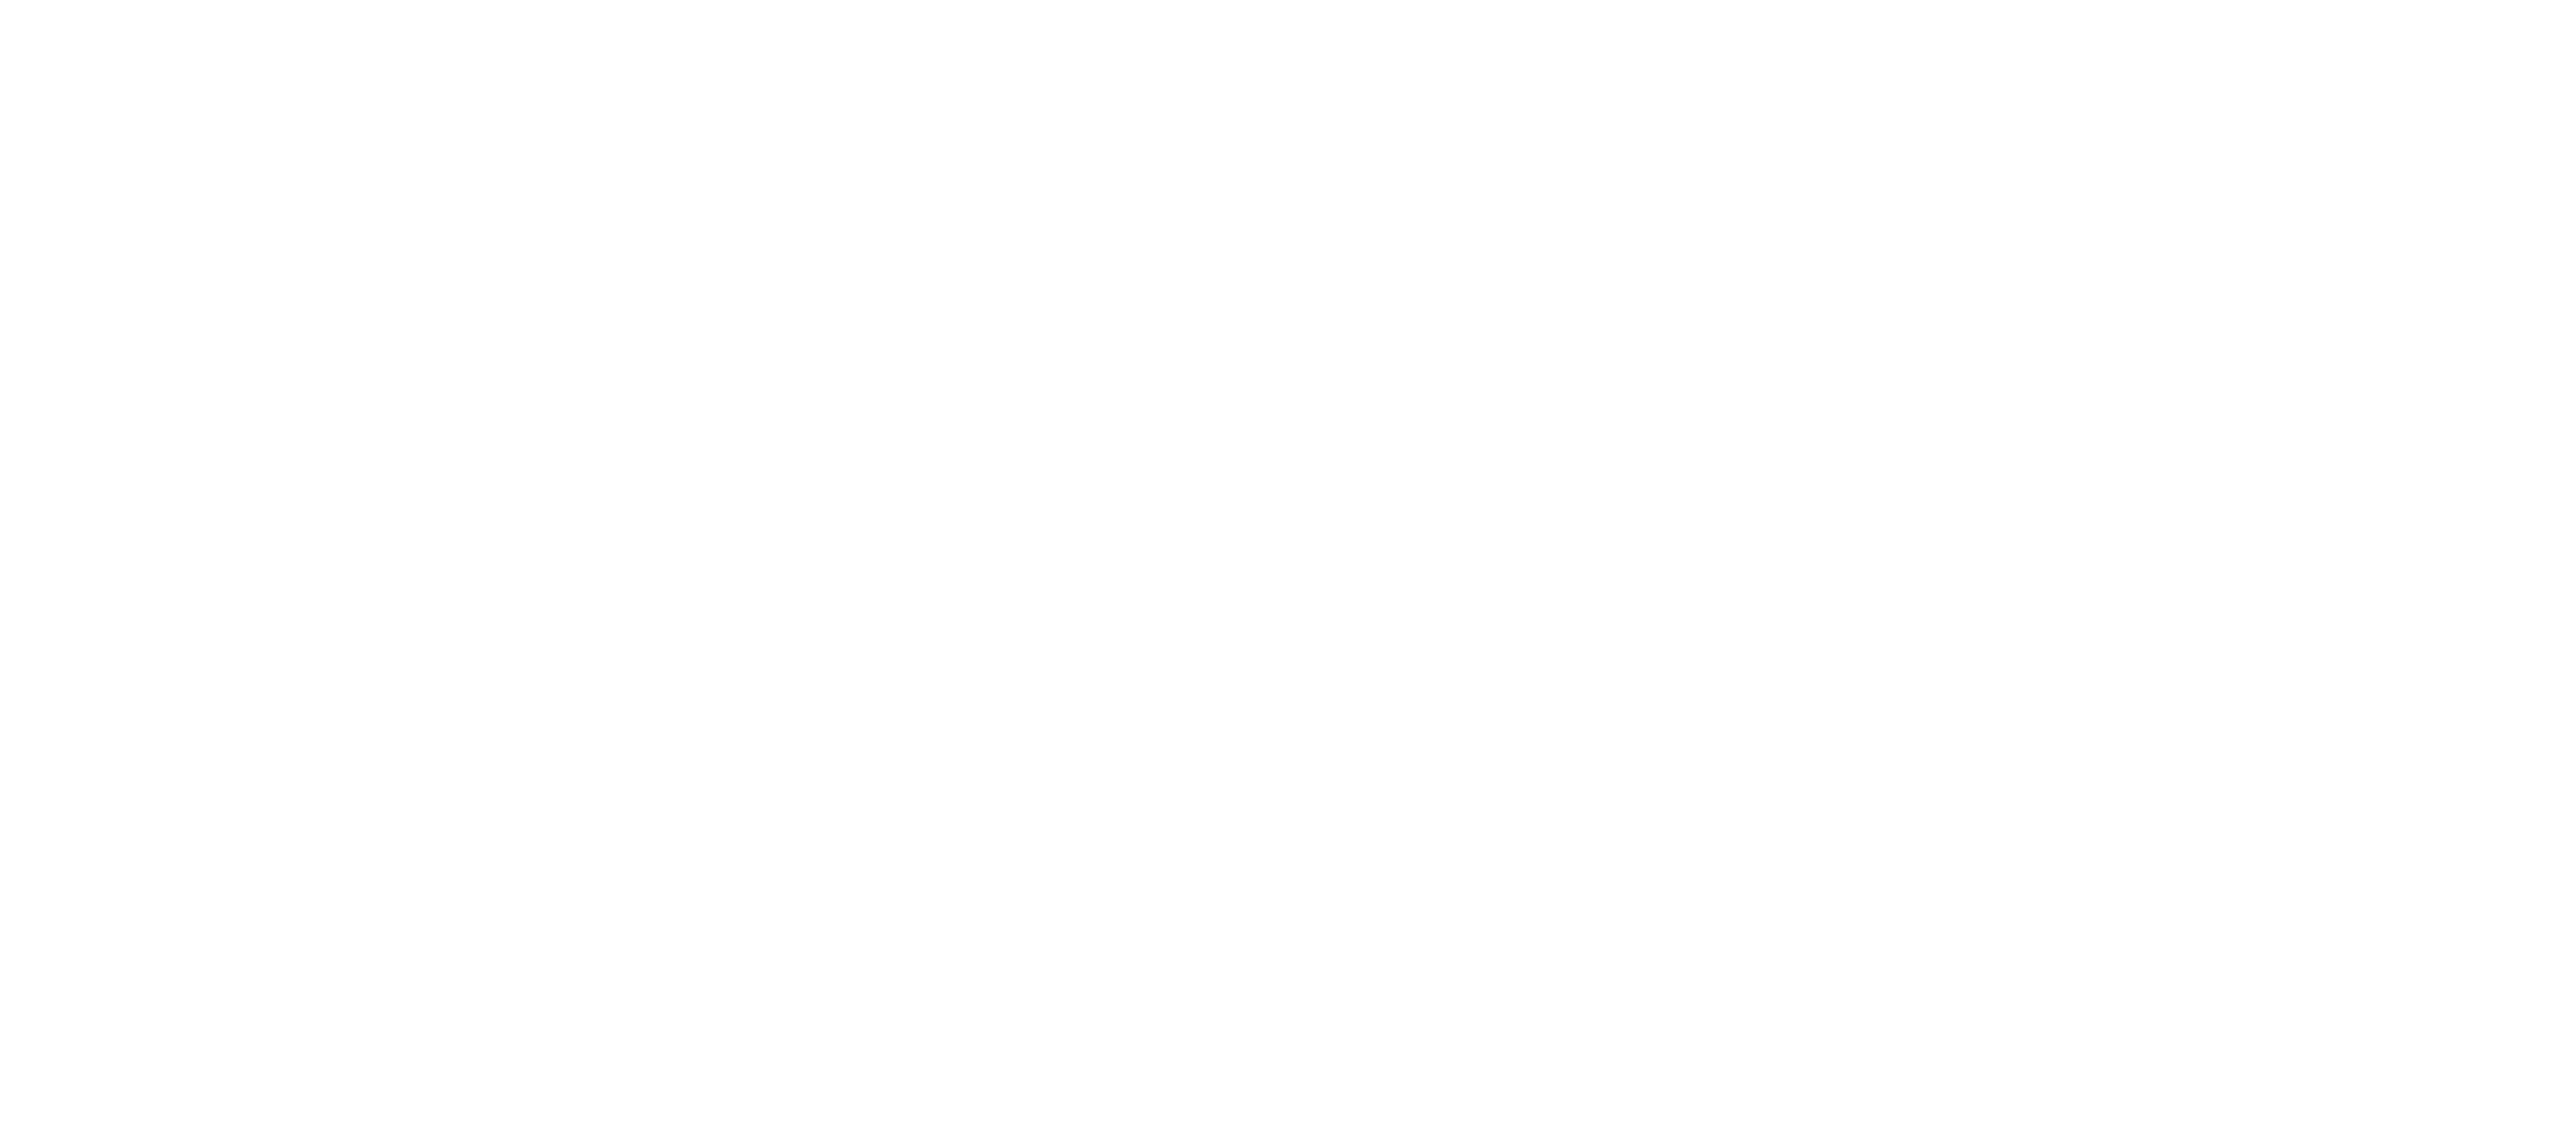 snowflakes for free. Snowflake border png transparent